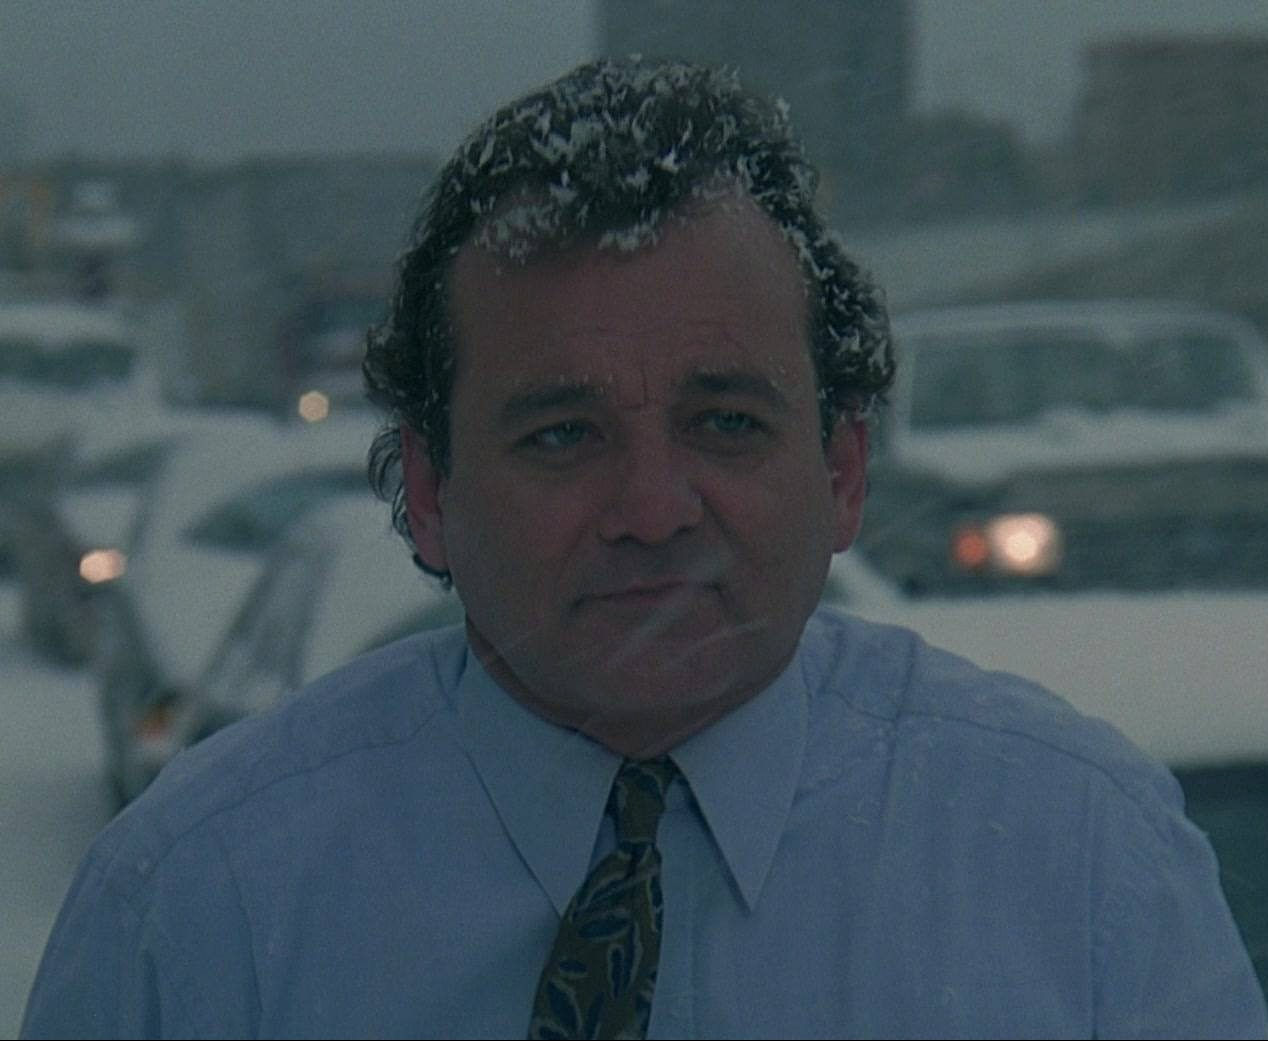 27 6 e1601293300940 20 Things You Might Not Have Realised About Groundhog Day